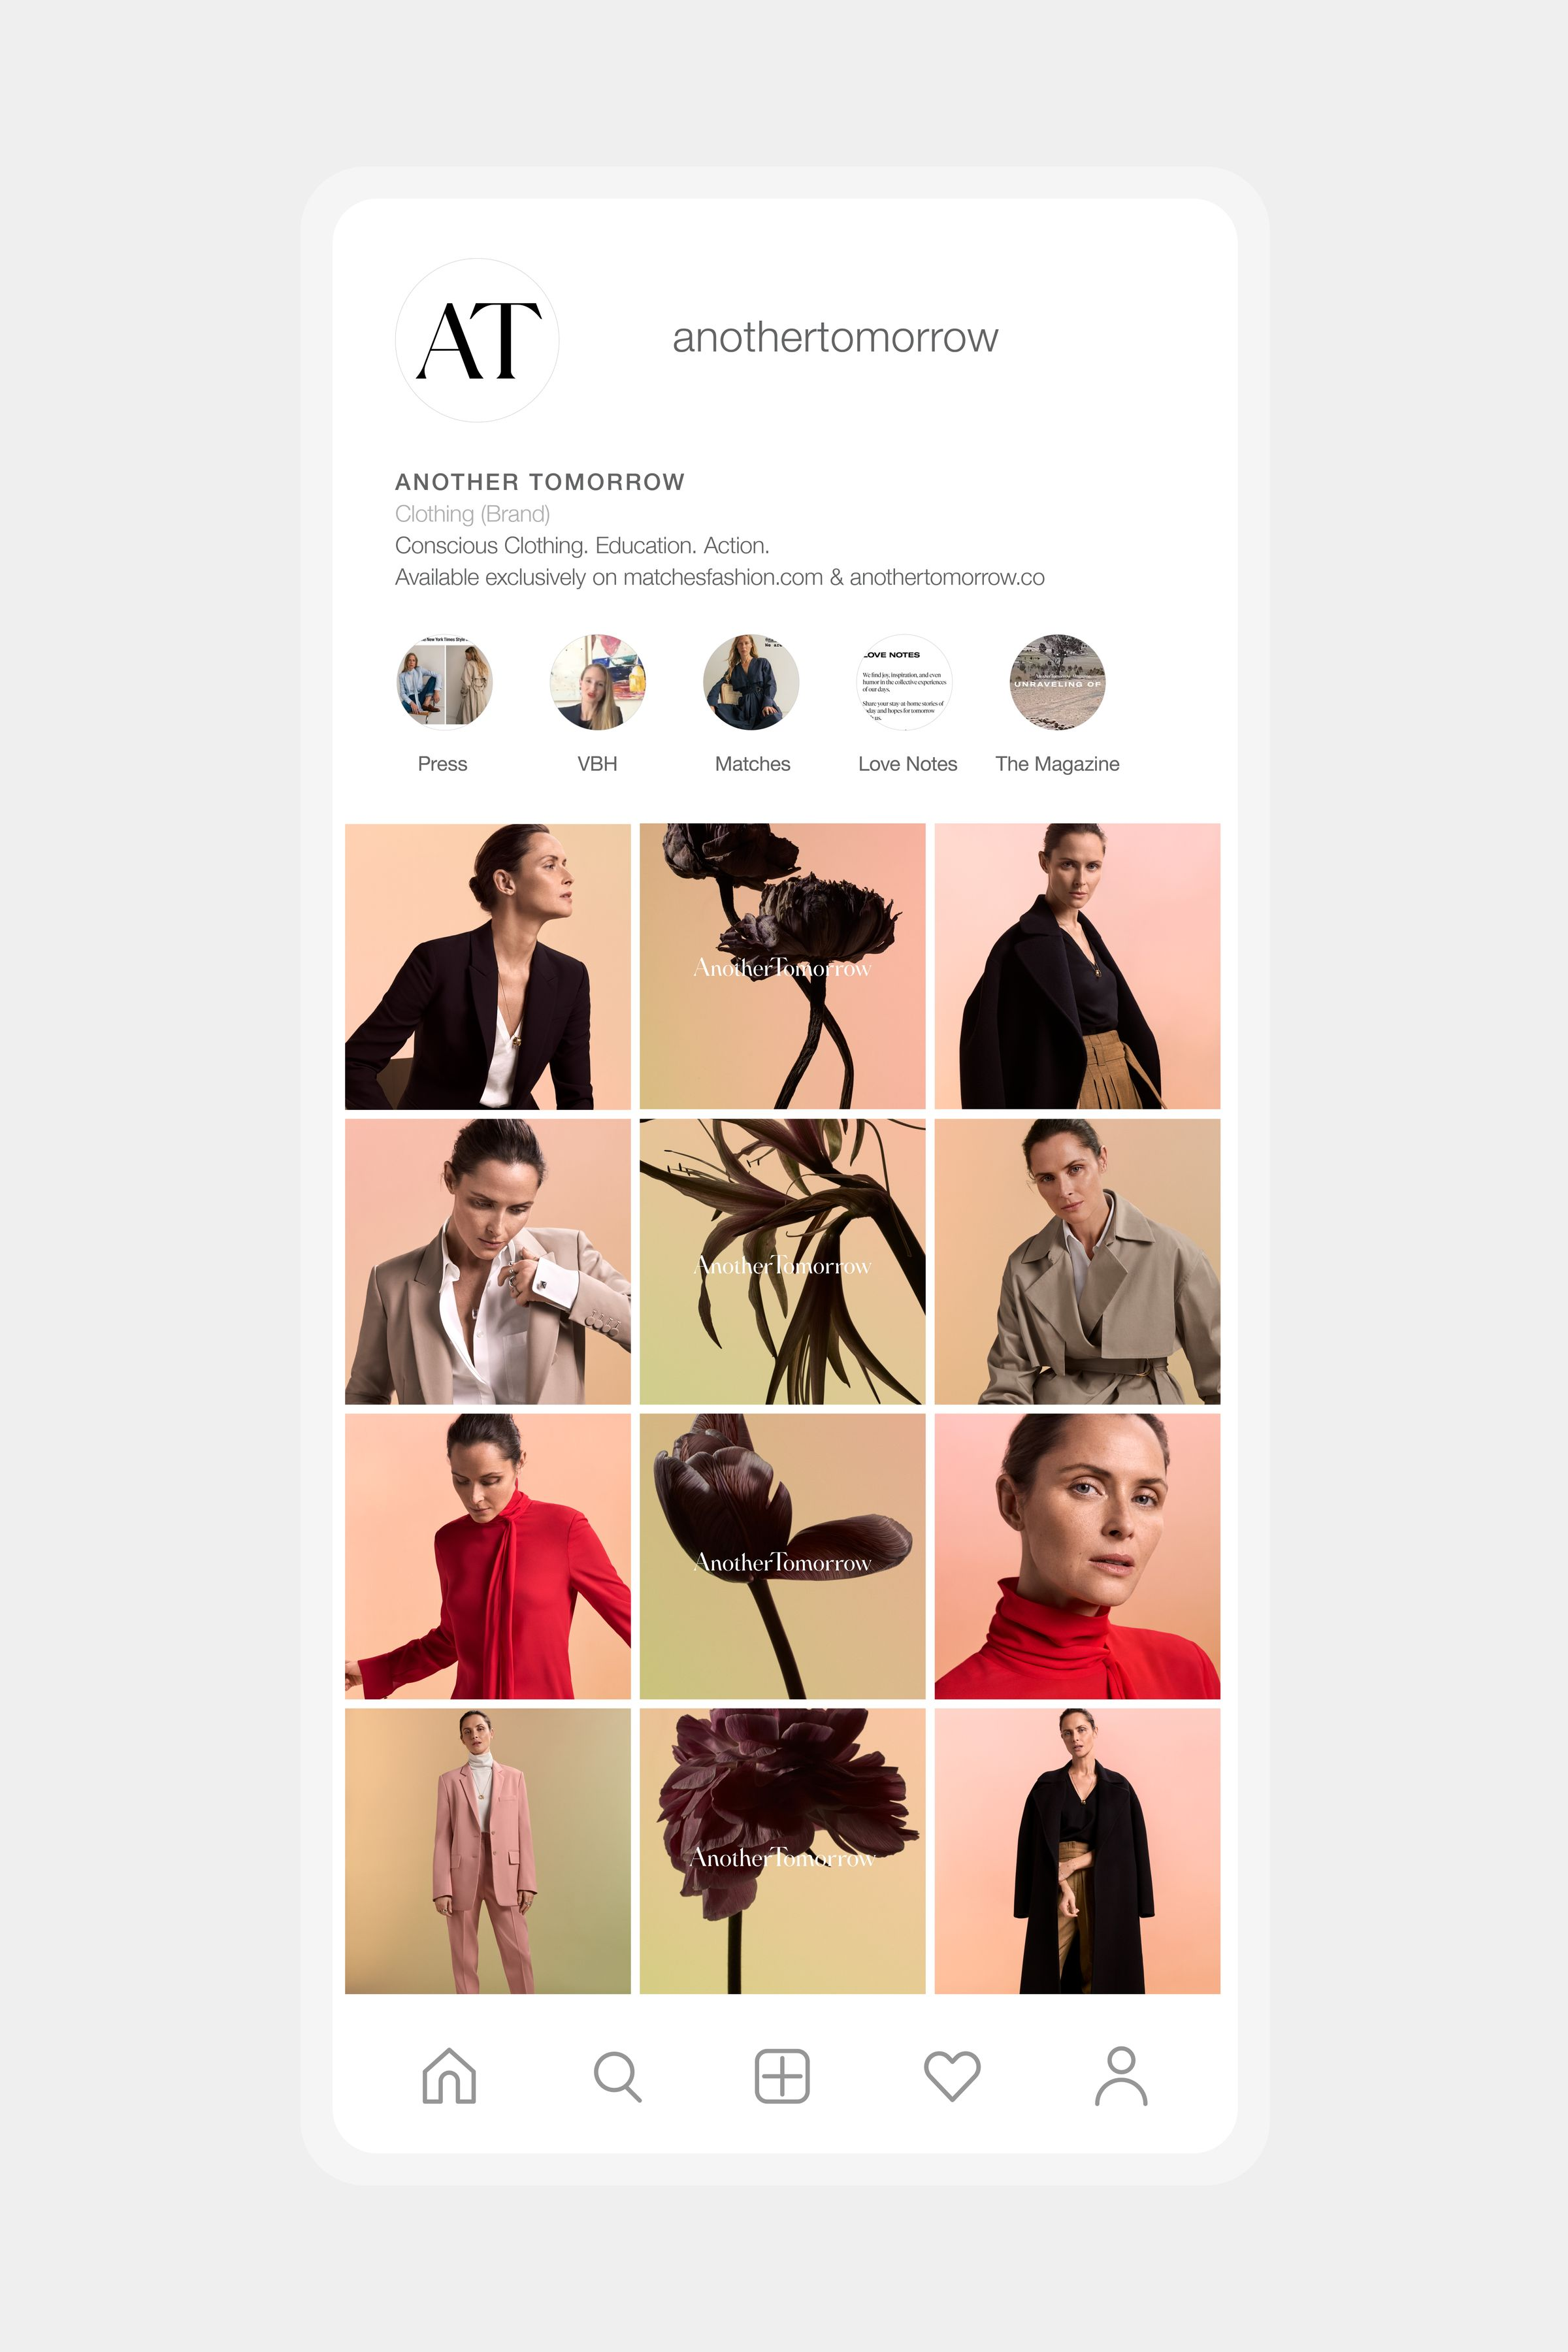 Another Tomorrow website design collection page